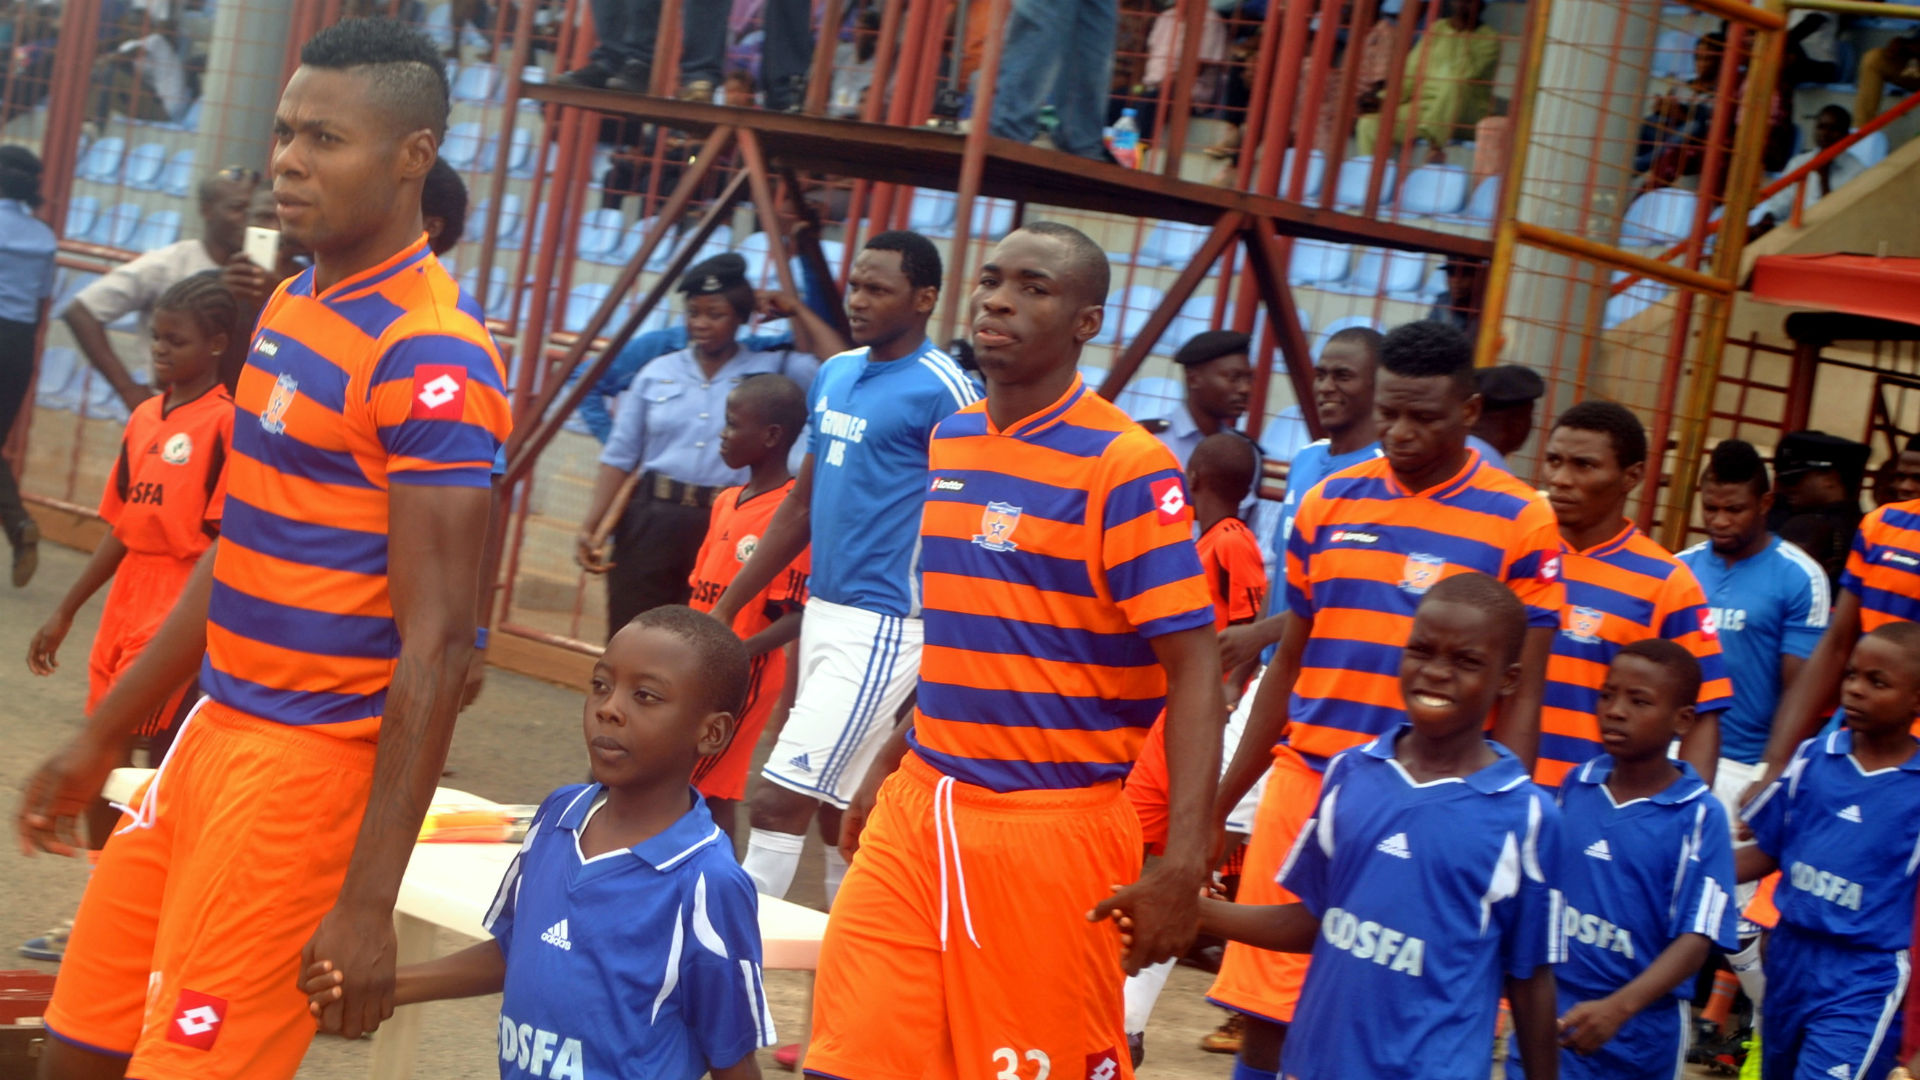 Npfl: Abia's Haul Gives Sunshine Maximum Three Points